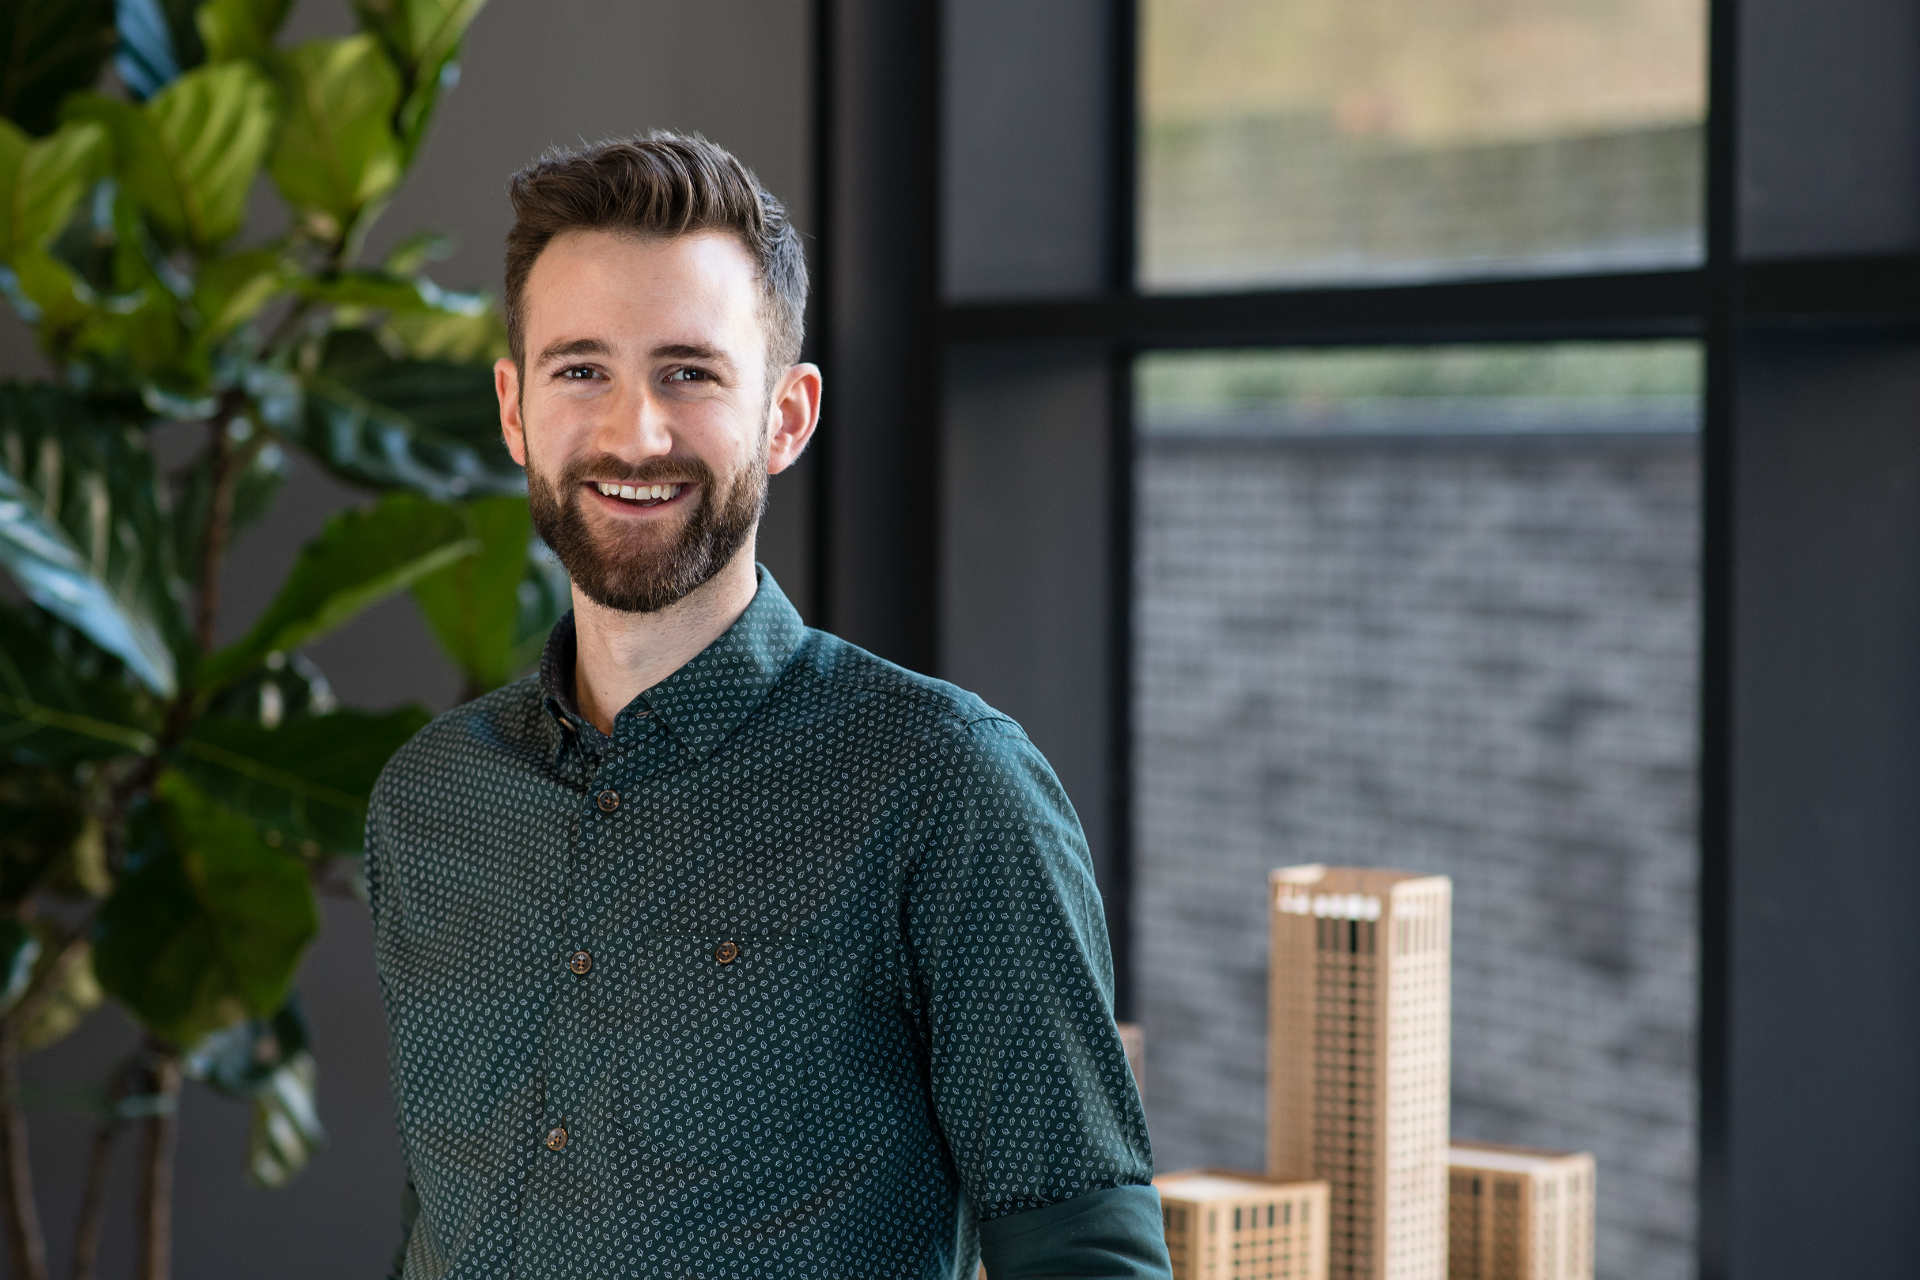 Ben Channon is an architect, author, TEDx speaker and mental wellbeing advocate. He is a Director at wellbeing design consultancy Ekkist and a member of the WELL Mind Advisory panel, using his expertise to raise the bar for healthy buildings worldwide.